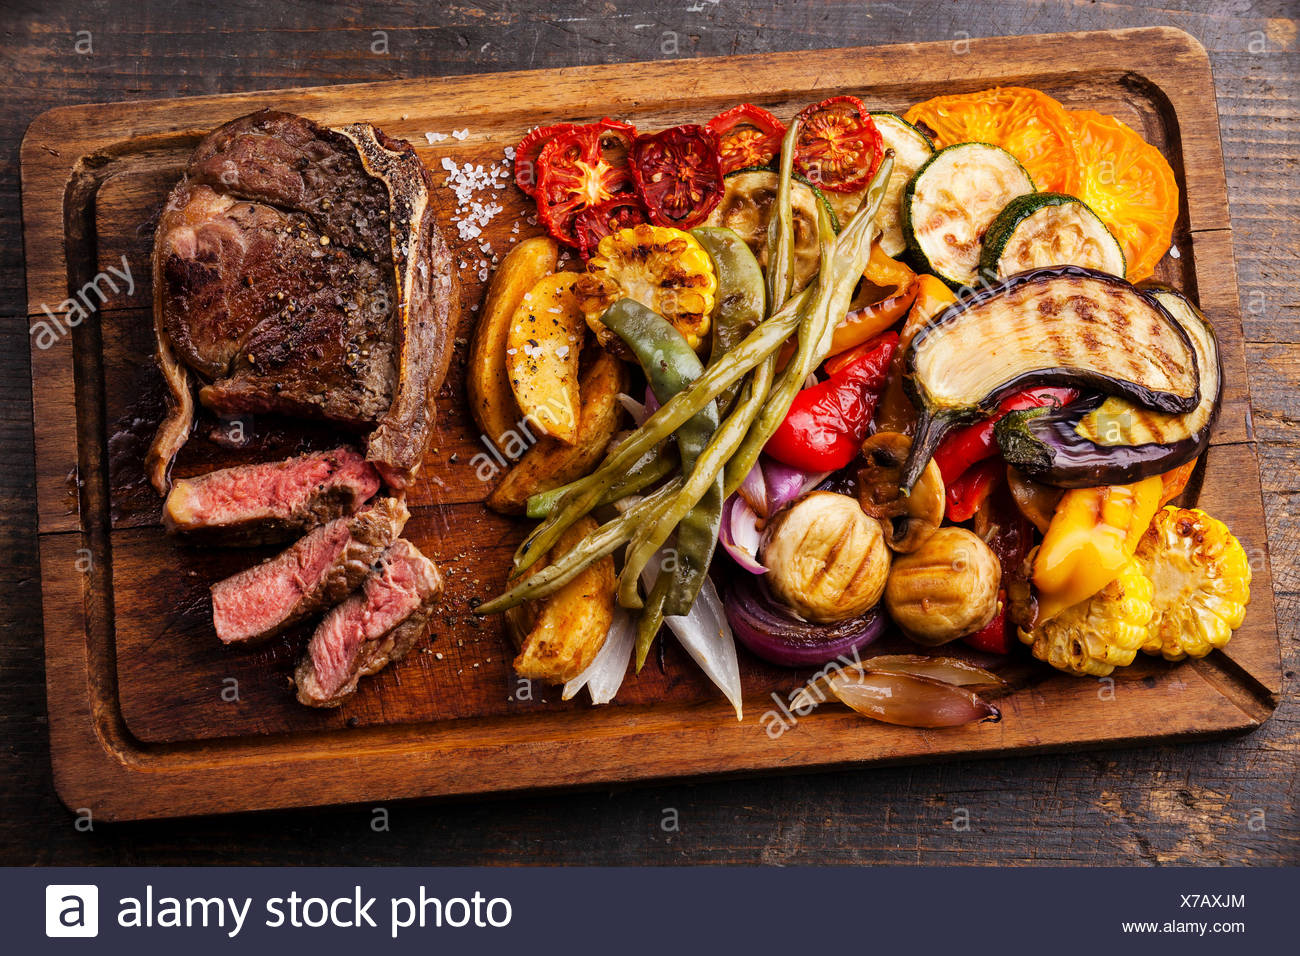 Club Beef steak with pepper sauce and Grilled vegetables on cutting board on dark wooden background - Stock Image